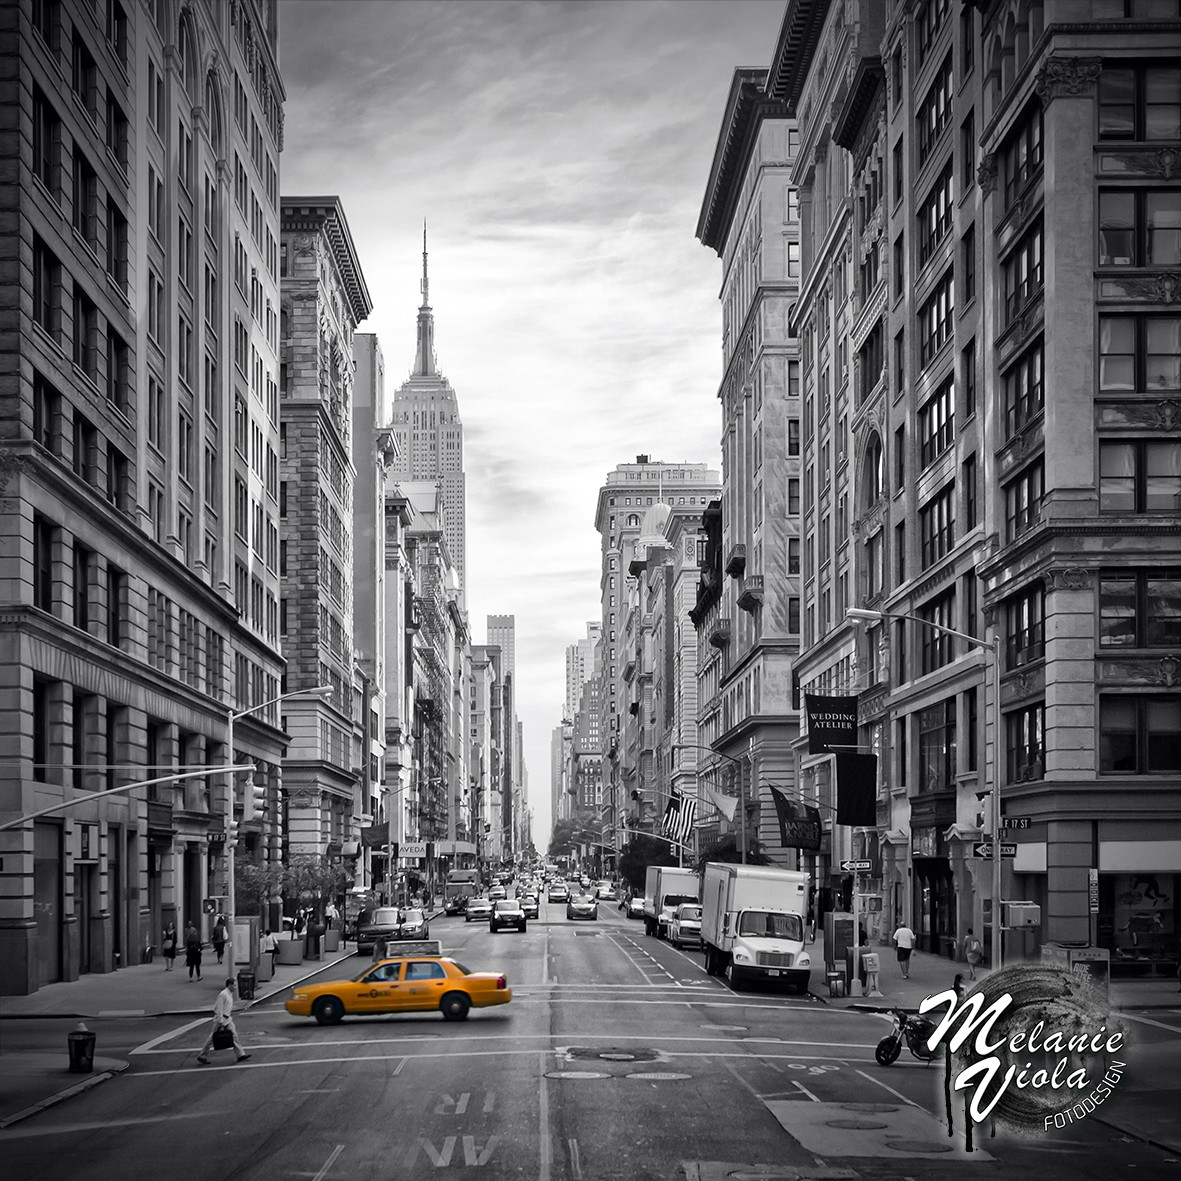 NEW YORK CITY 5th Avenue | OhMyPrints Onlineshop